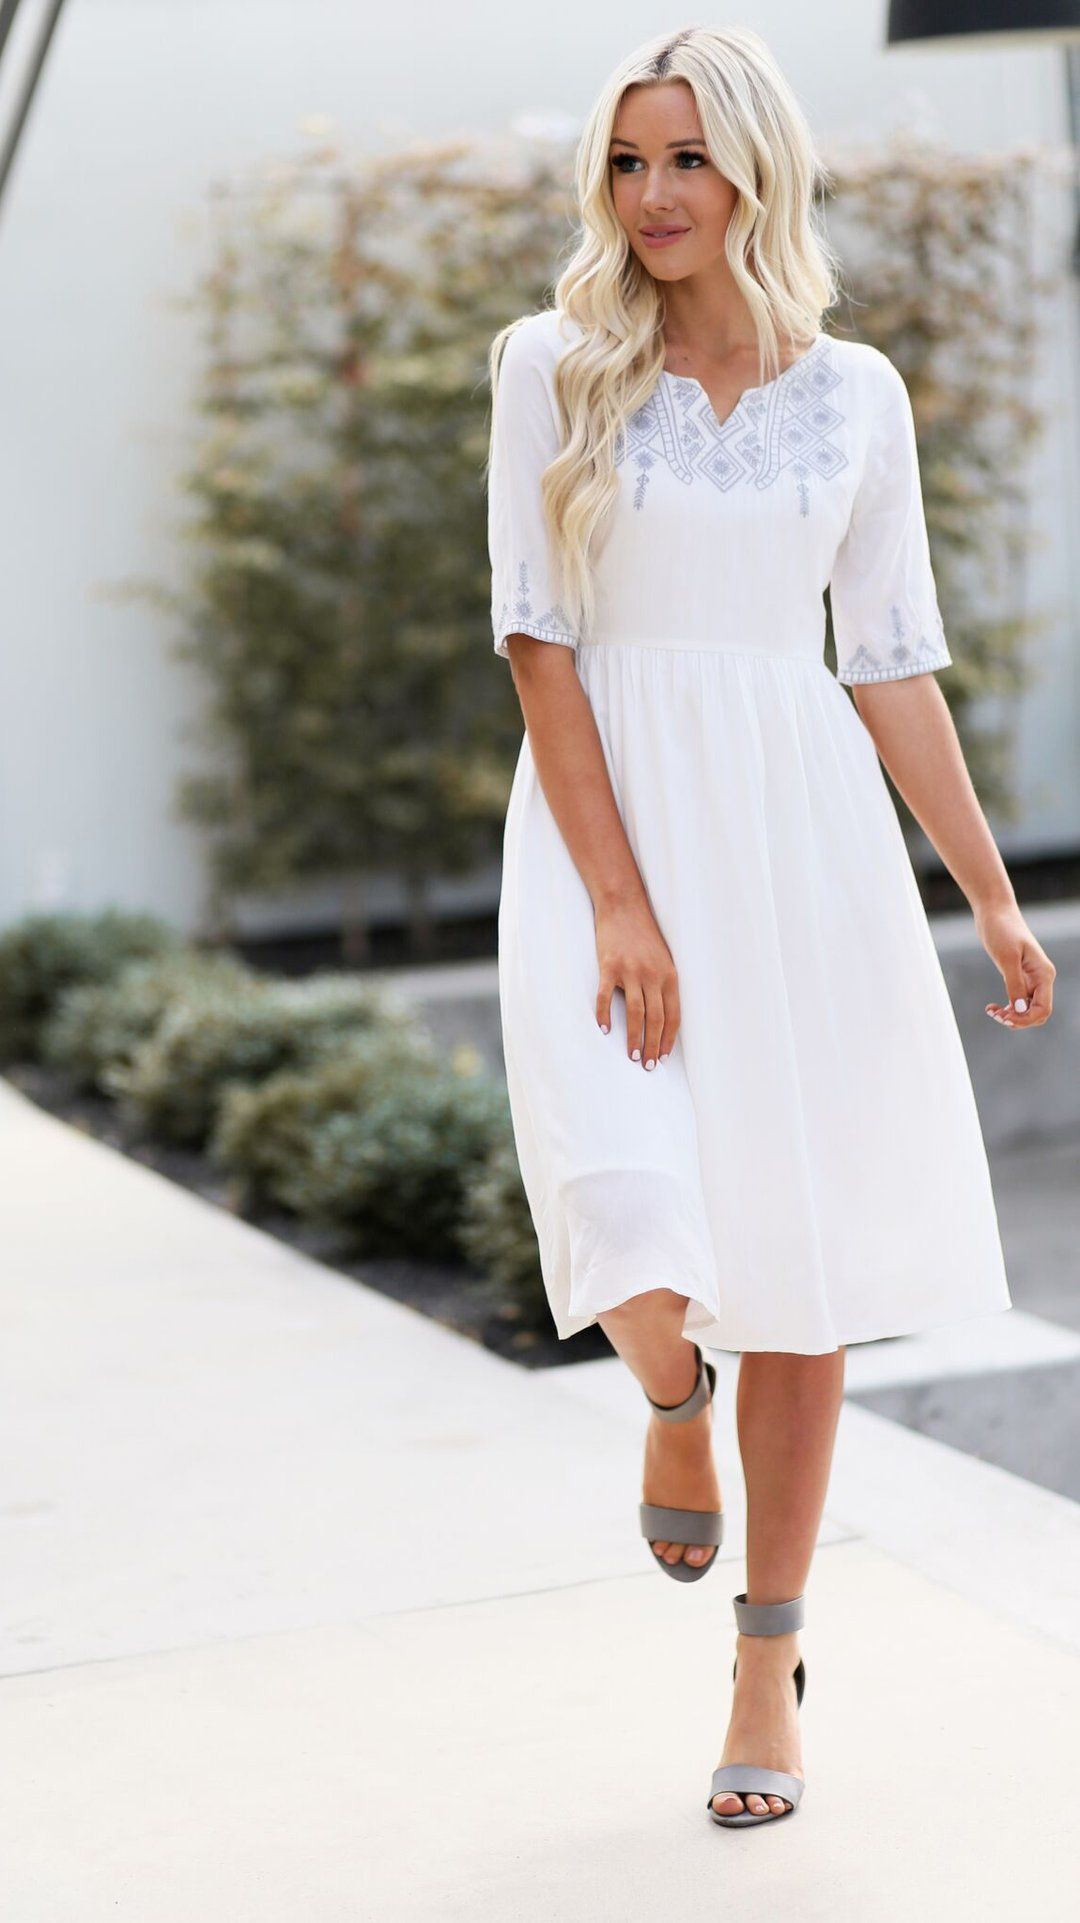 A Super Comfy Vintage Looking Dress In White With A Cute Design At The Neck 2xl Requires 1 2 Extra D Modest White Dress Modest Dresses Modest Dresses Casual [ 1923 x 1080 Pixel ]